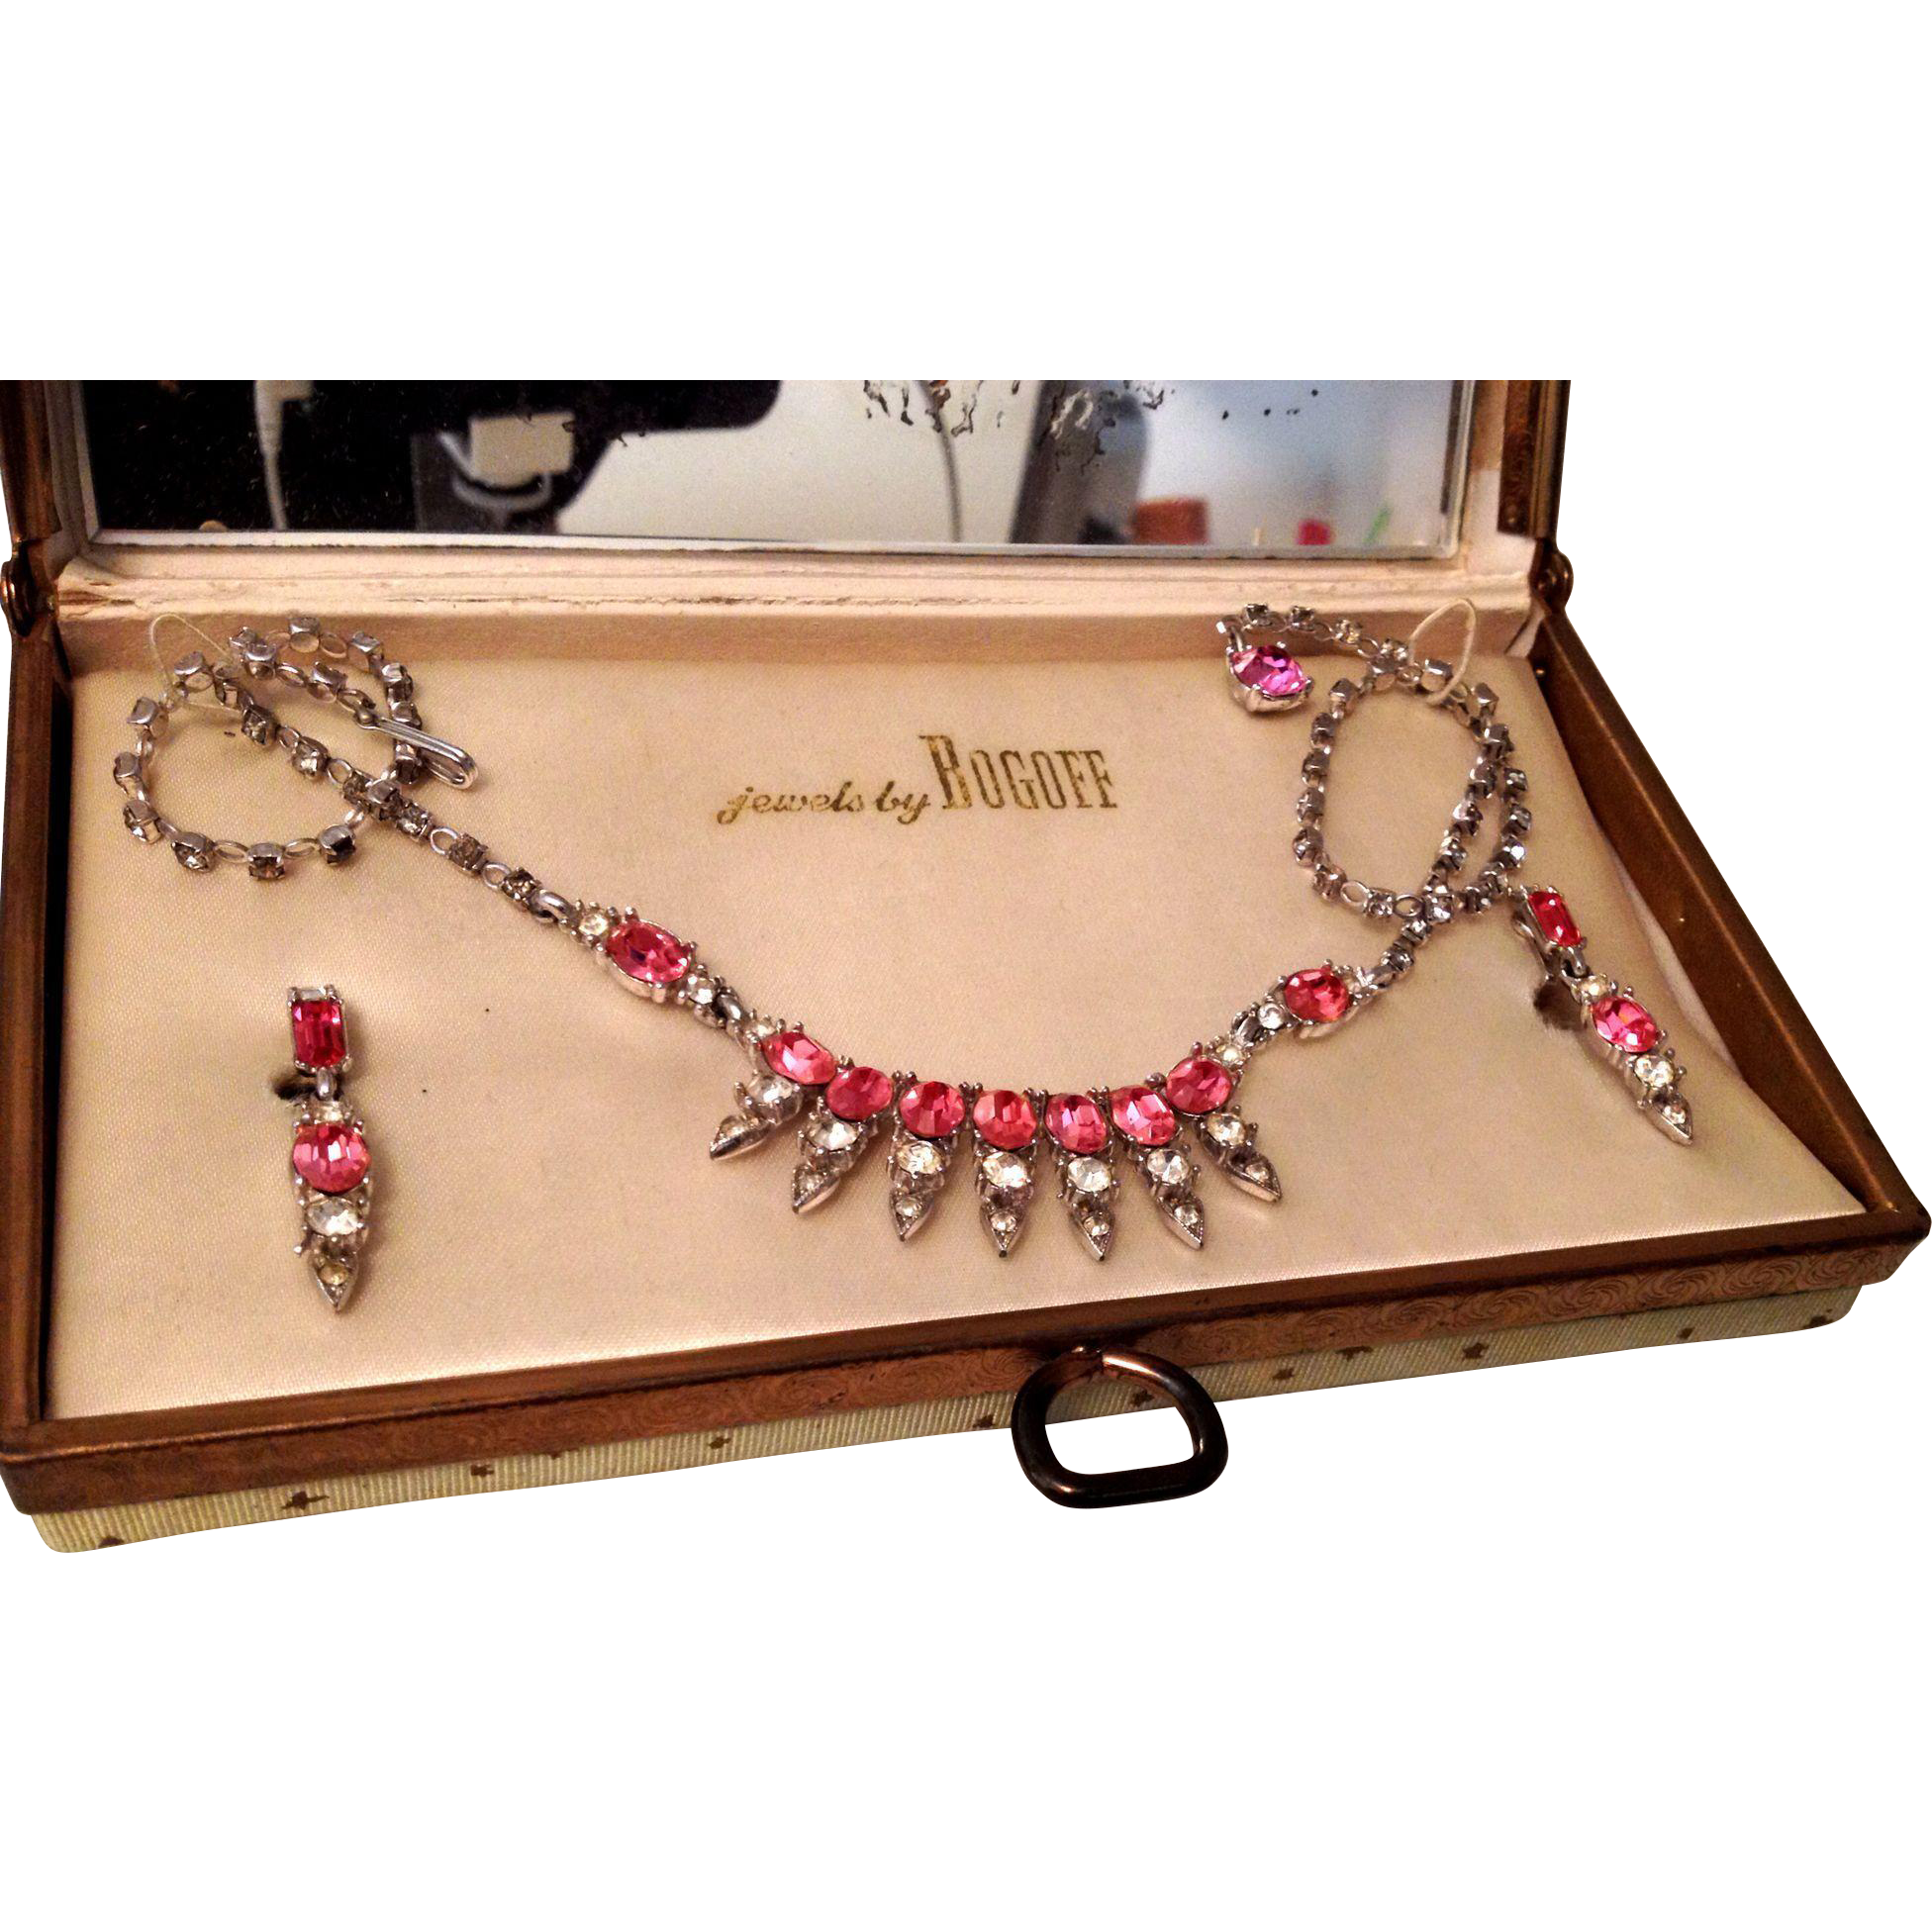 Bogoff pink rhinestone necklace and earrings in original for Bogoff vintage costume jewelry